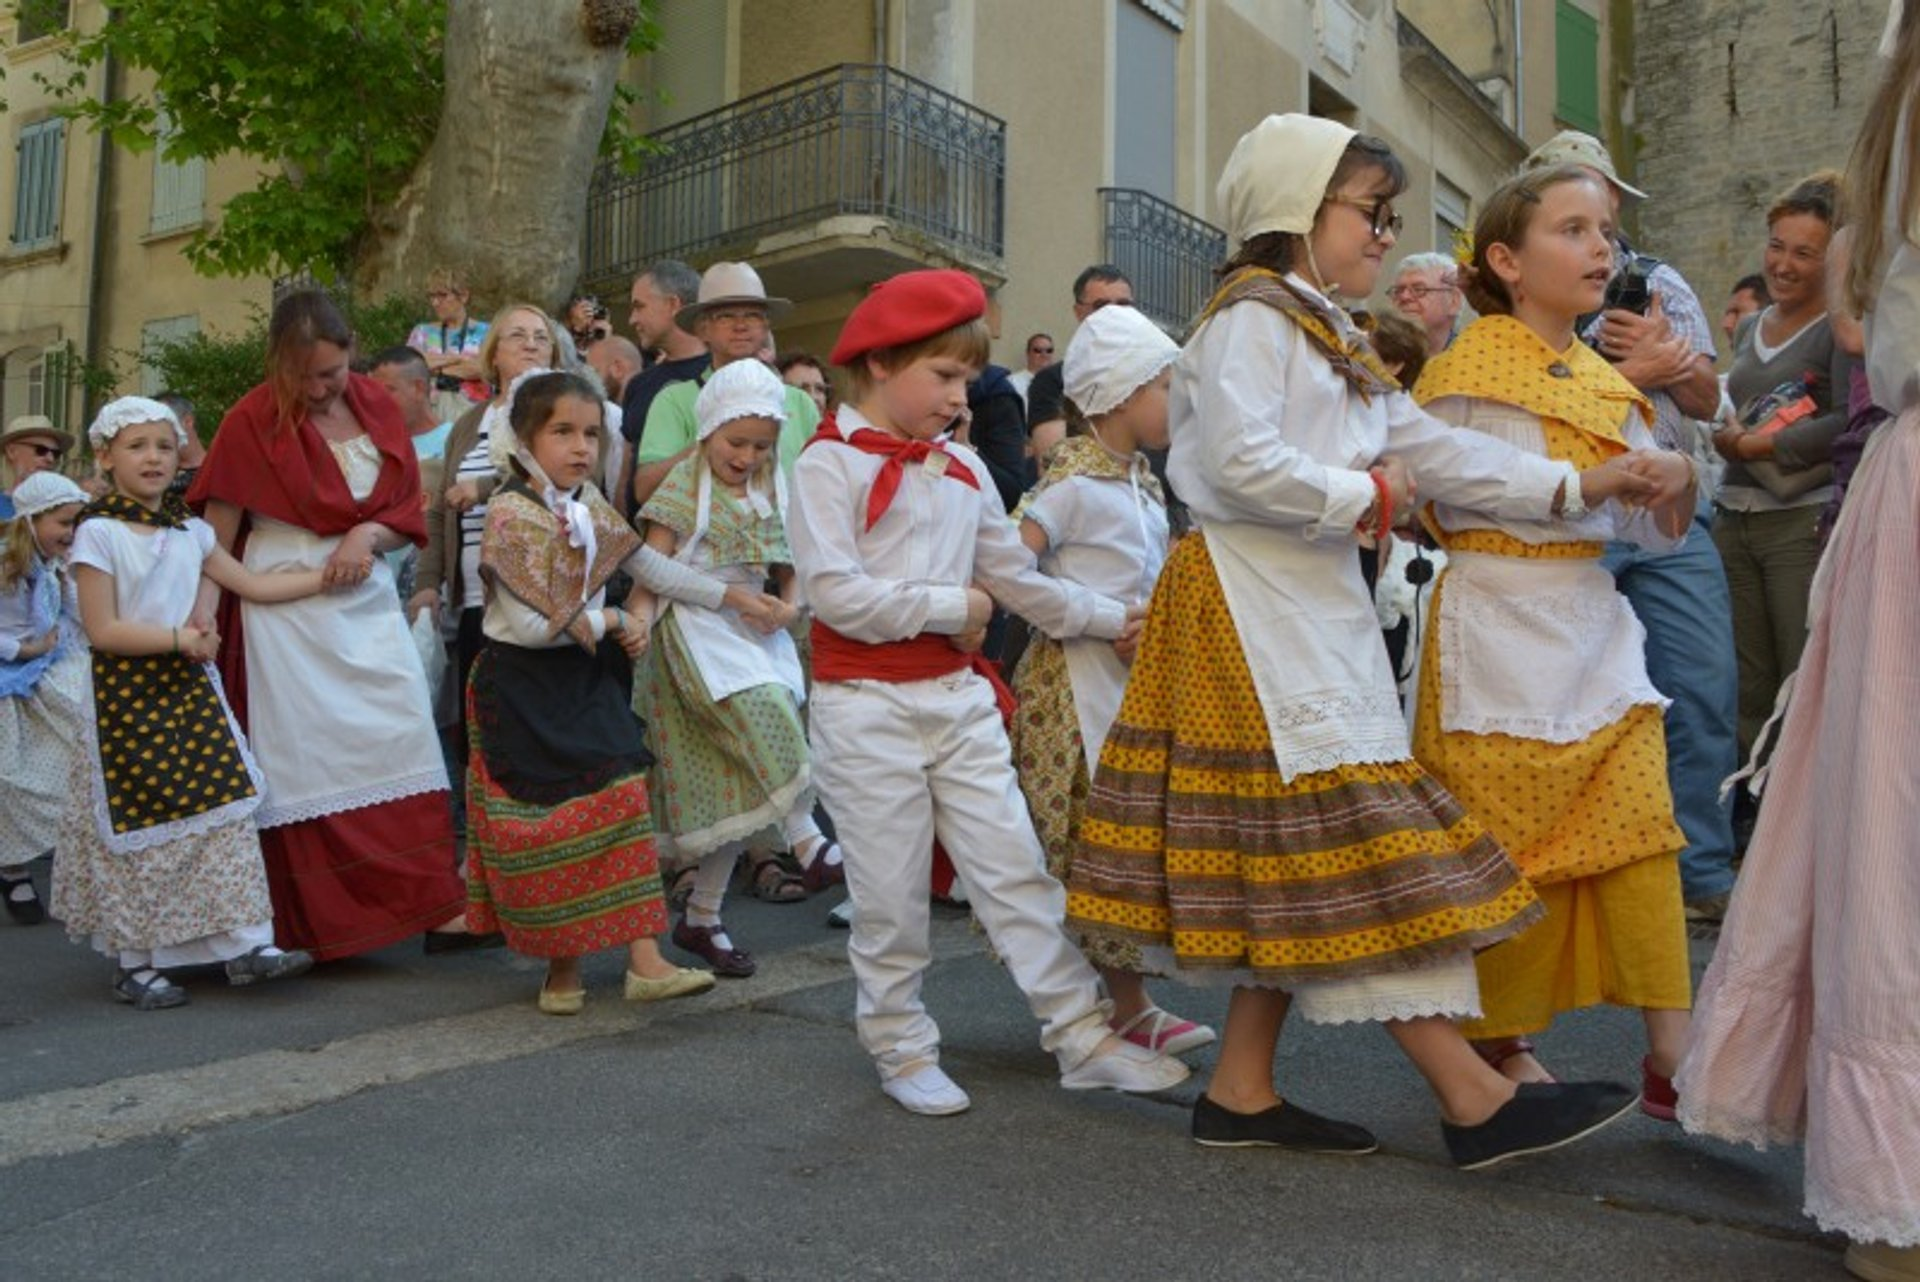 Saint Tulle's May Day in Cucuron in Provence & French Riviera - Best Season 2019